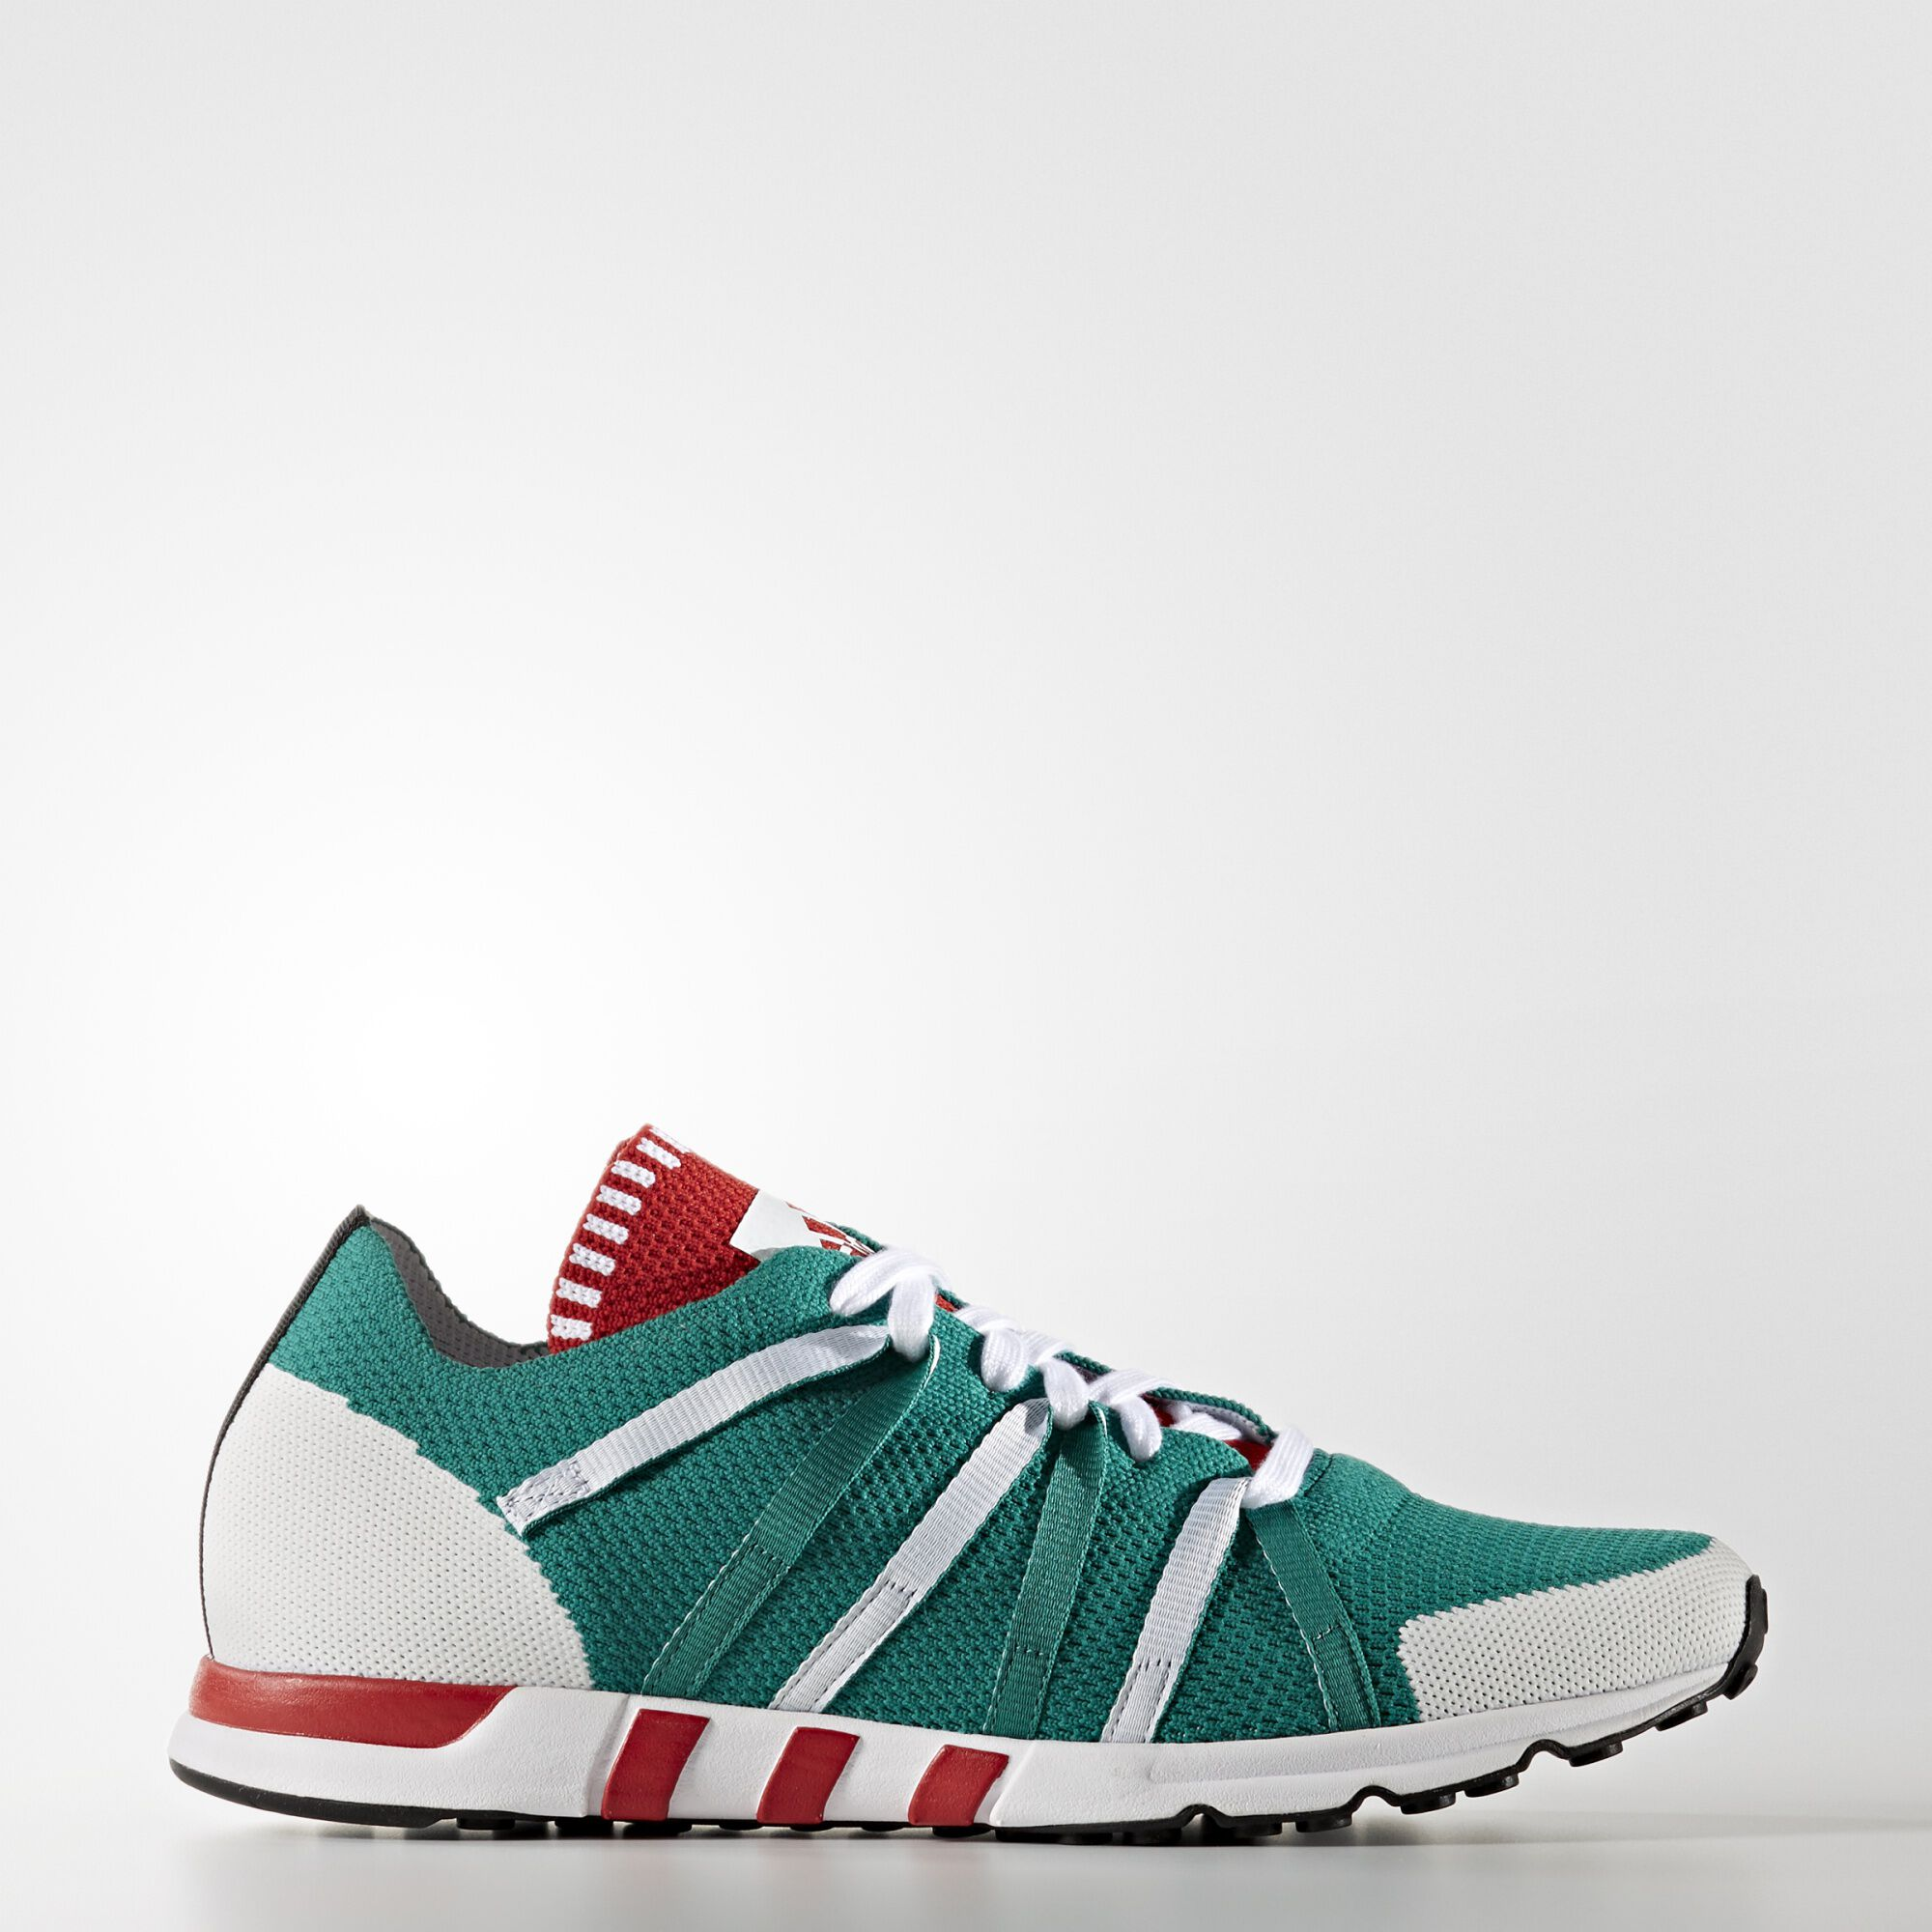 Adidas Eqt Support Future Boost x White Mountaineering BB3127